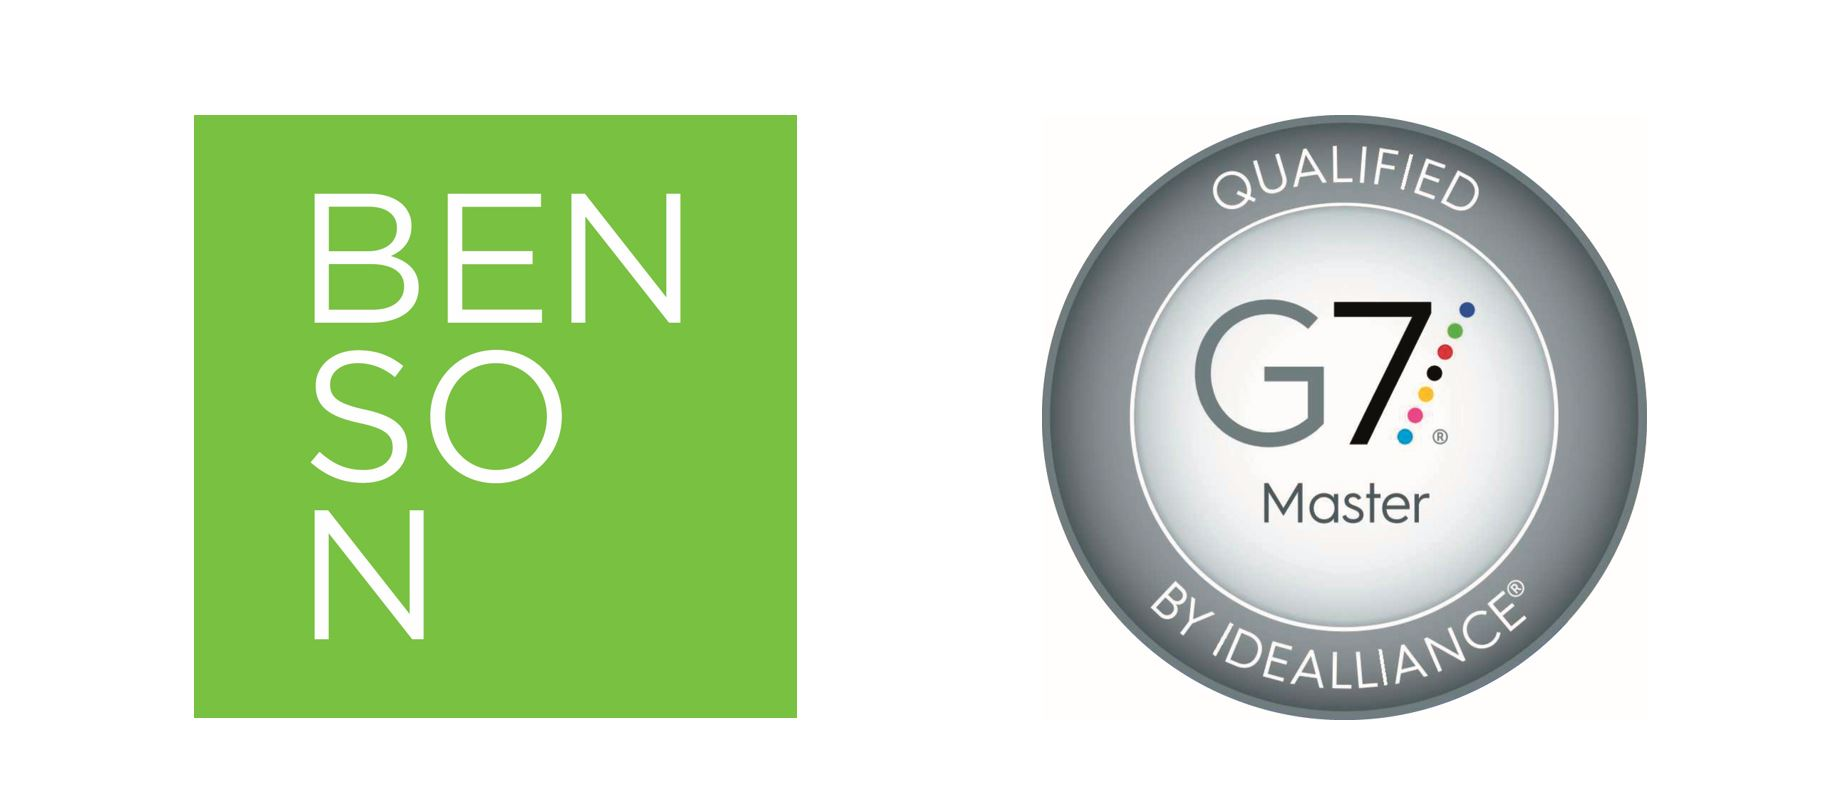 Benson Awarded G7®Master Qualification Status for Third Consecutive Year